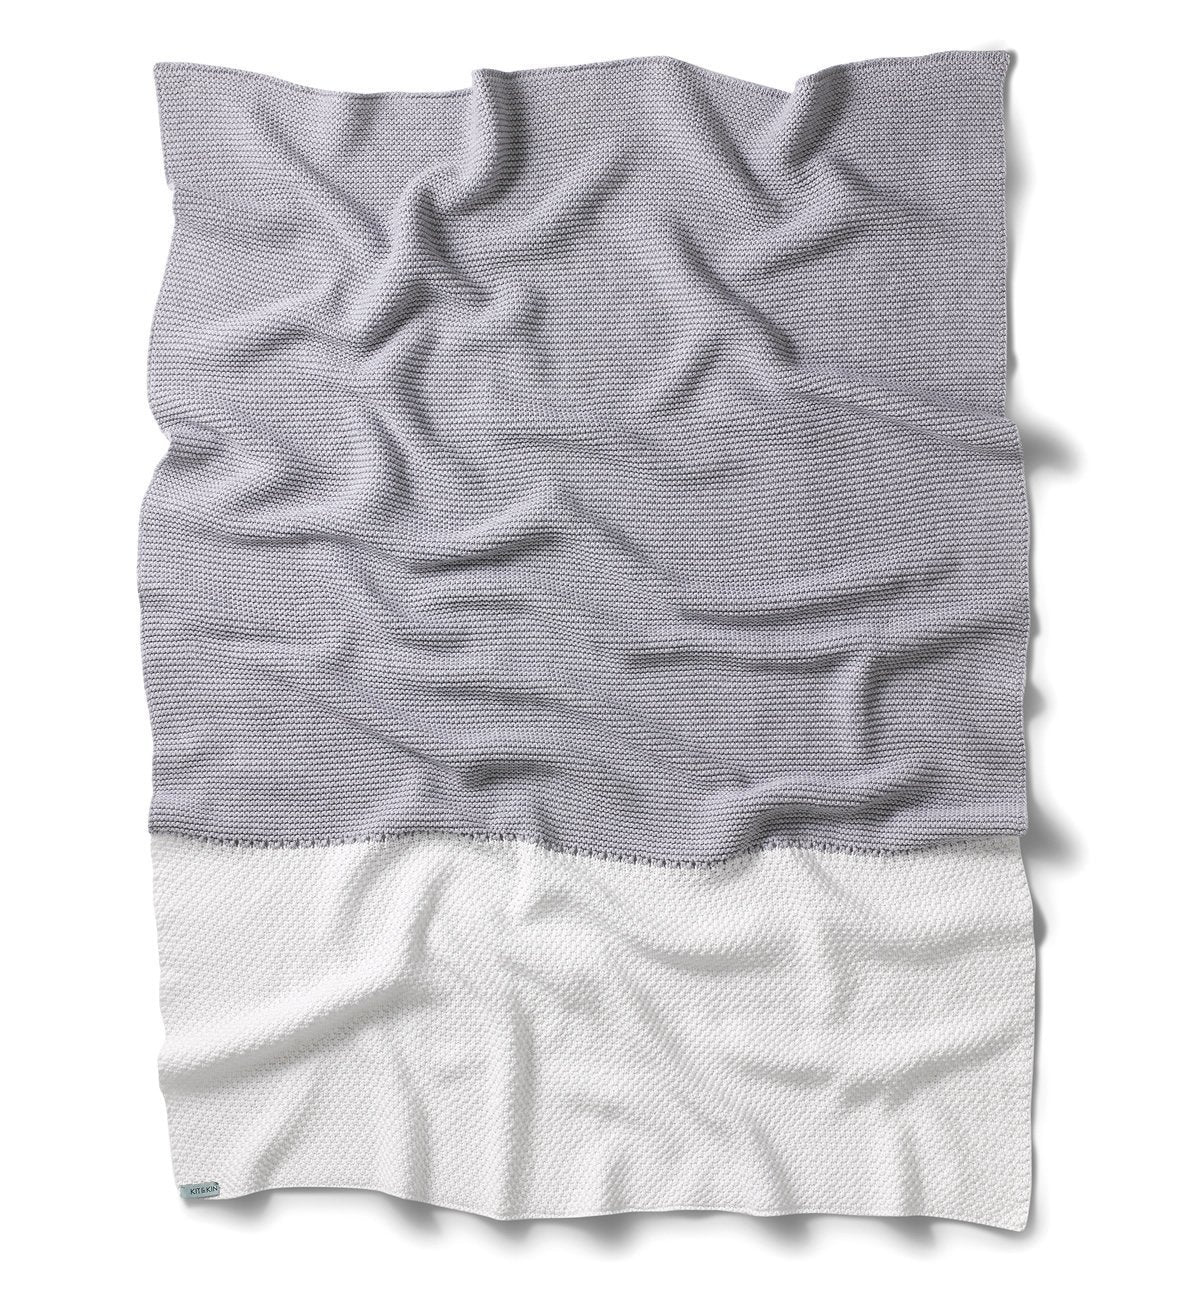 Chunky knit grey blanket